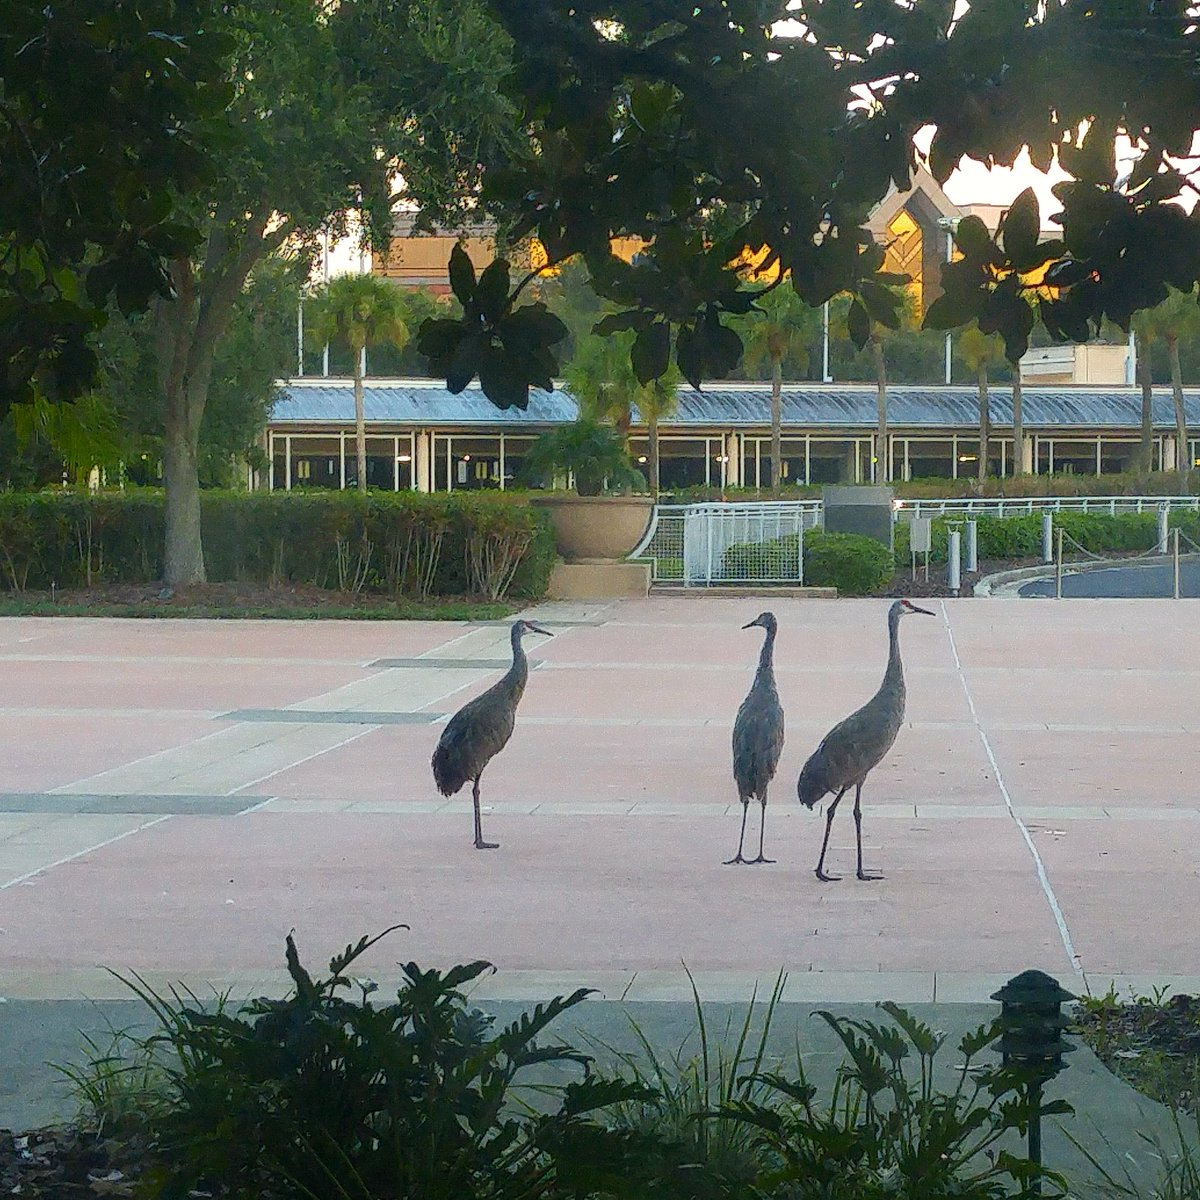 Resident family at the office here in @CityofTampa . #LifeAtCiti #FloridaLife #SandhillCranes